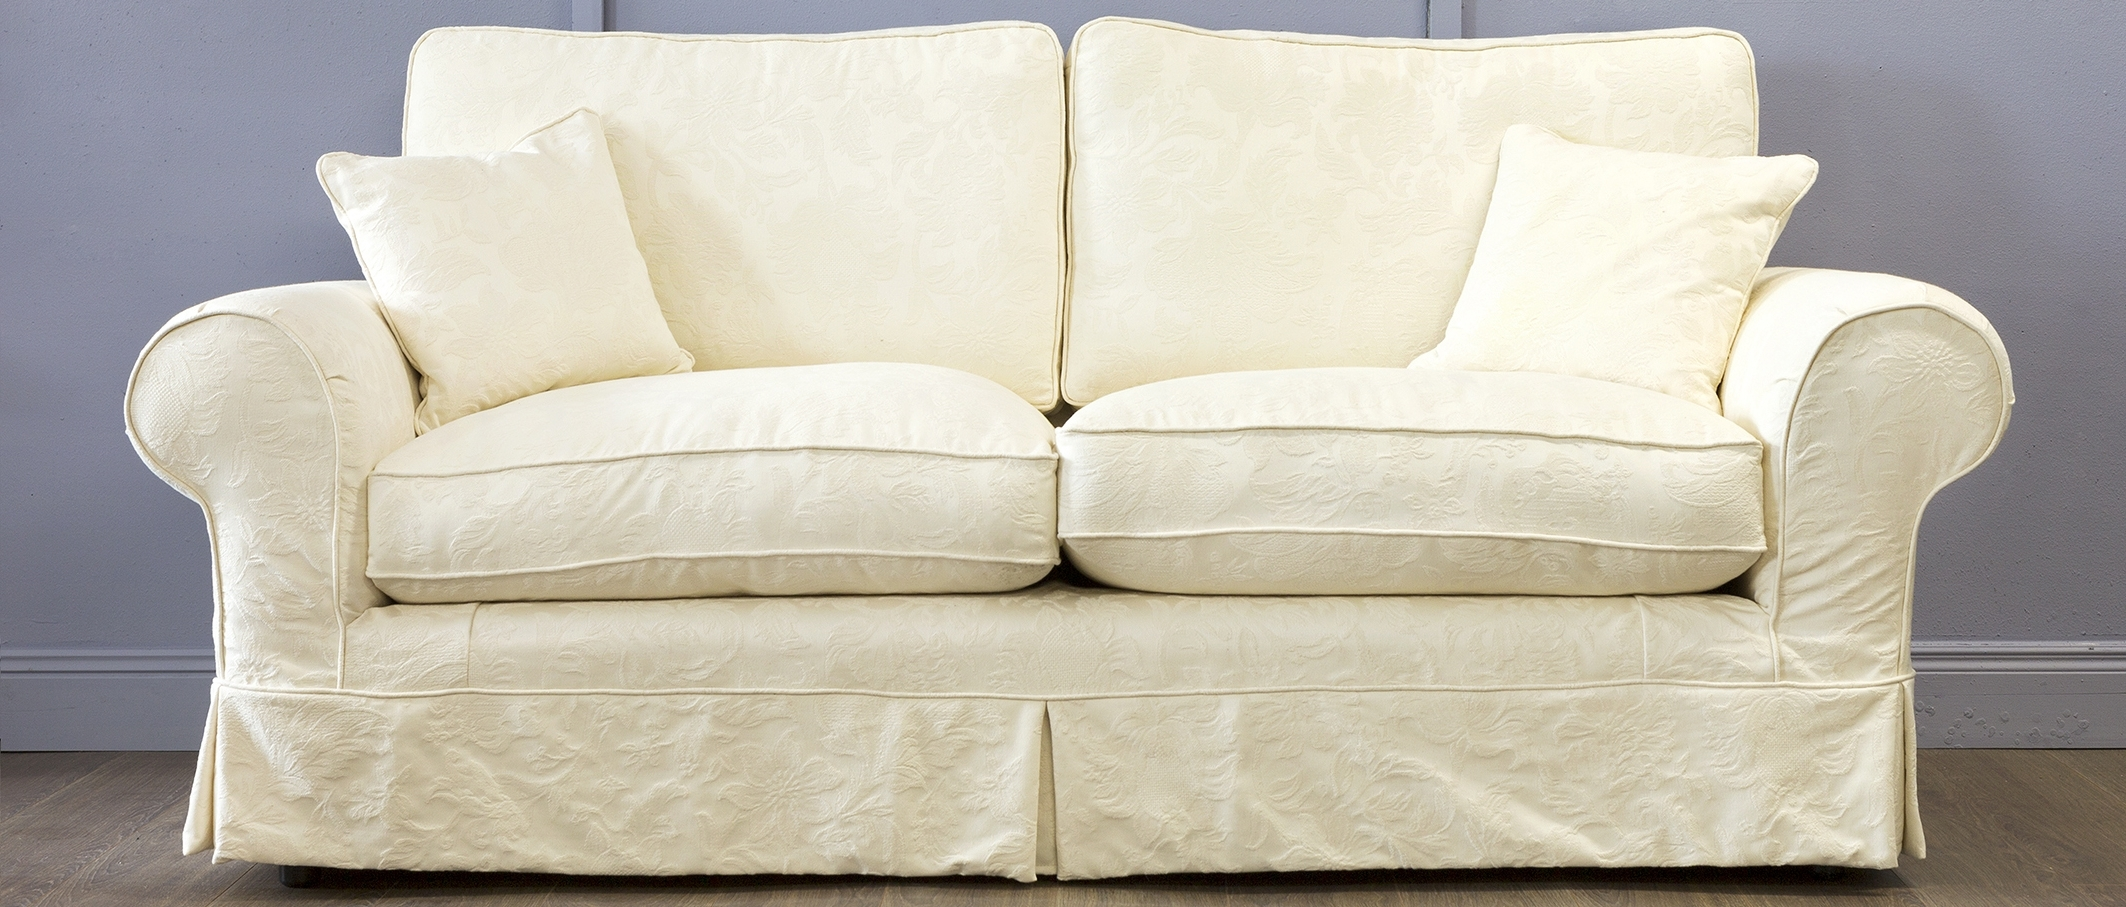 2019 Sofas With Removable Washable Covers – Fjellkjeden Pertaining To Sofas With Washable Covers (View 3 of 20)